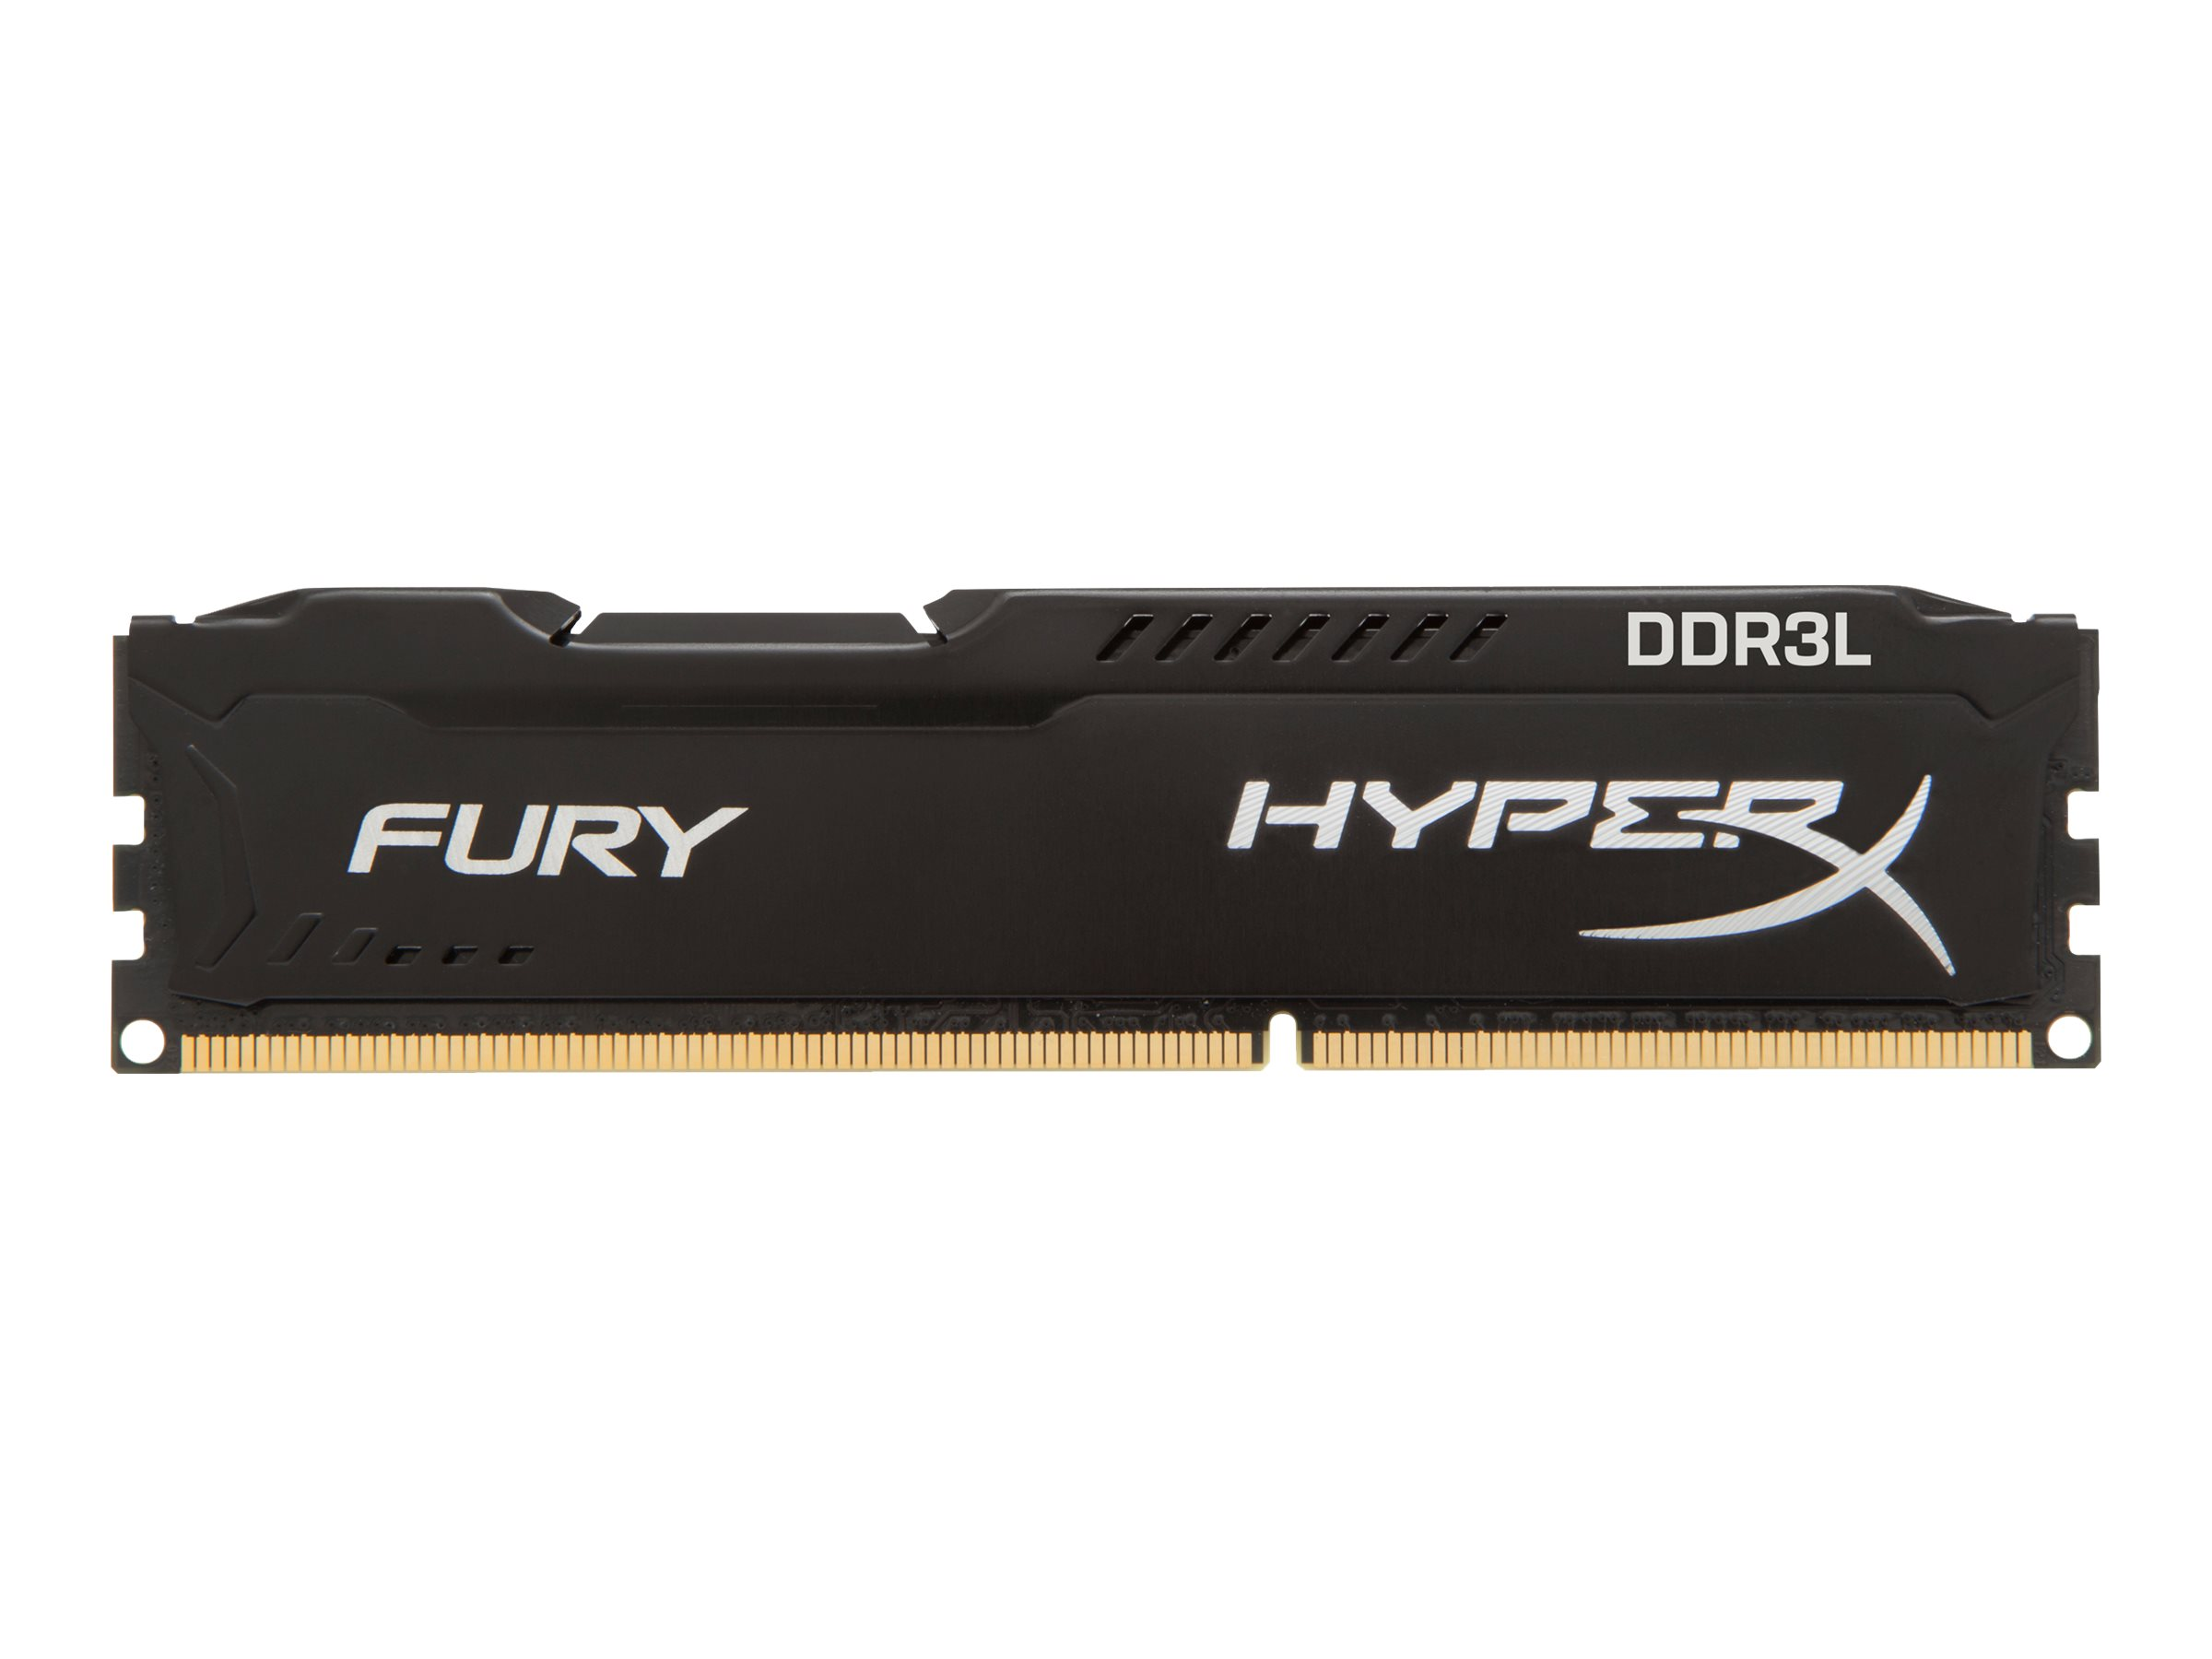 HyperX FURY - DDR3L - 16 GB: 2 x 8 GB - DIMM 240-PIN - 1866 MHz / PC3L-14900 - CL11